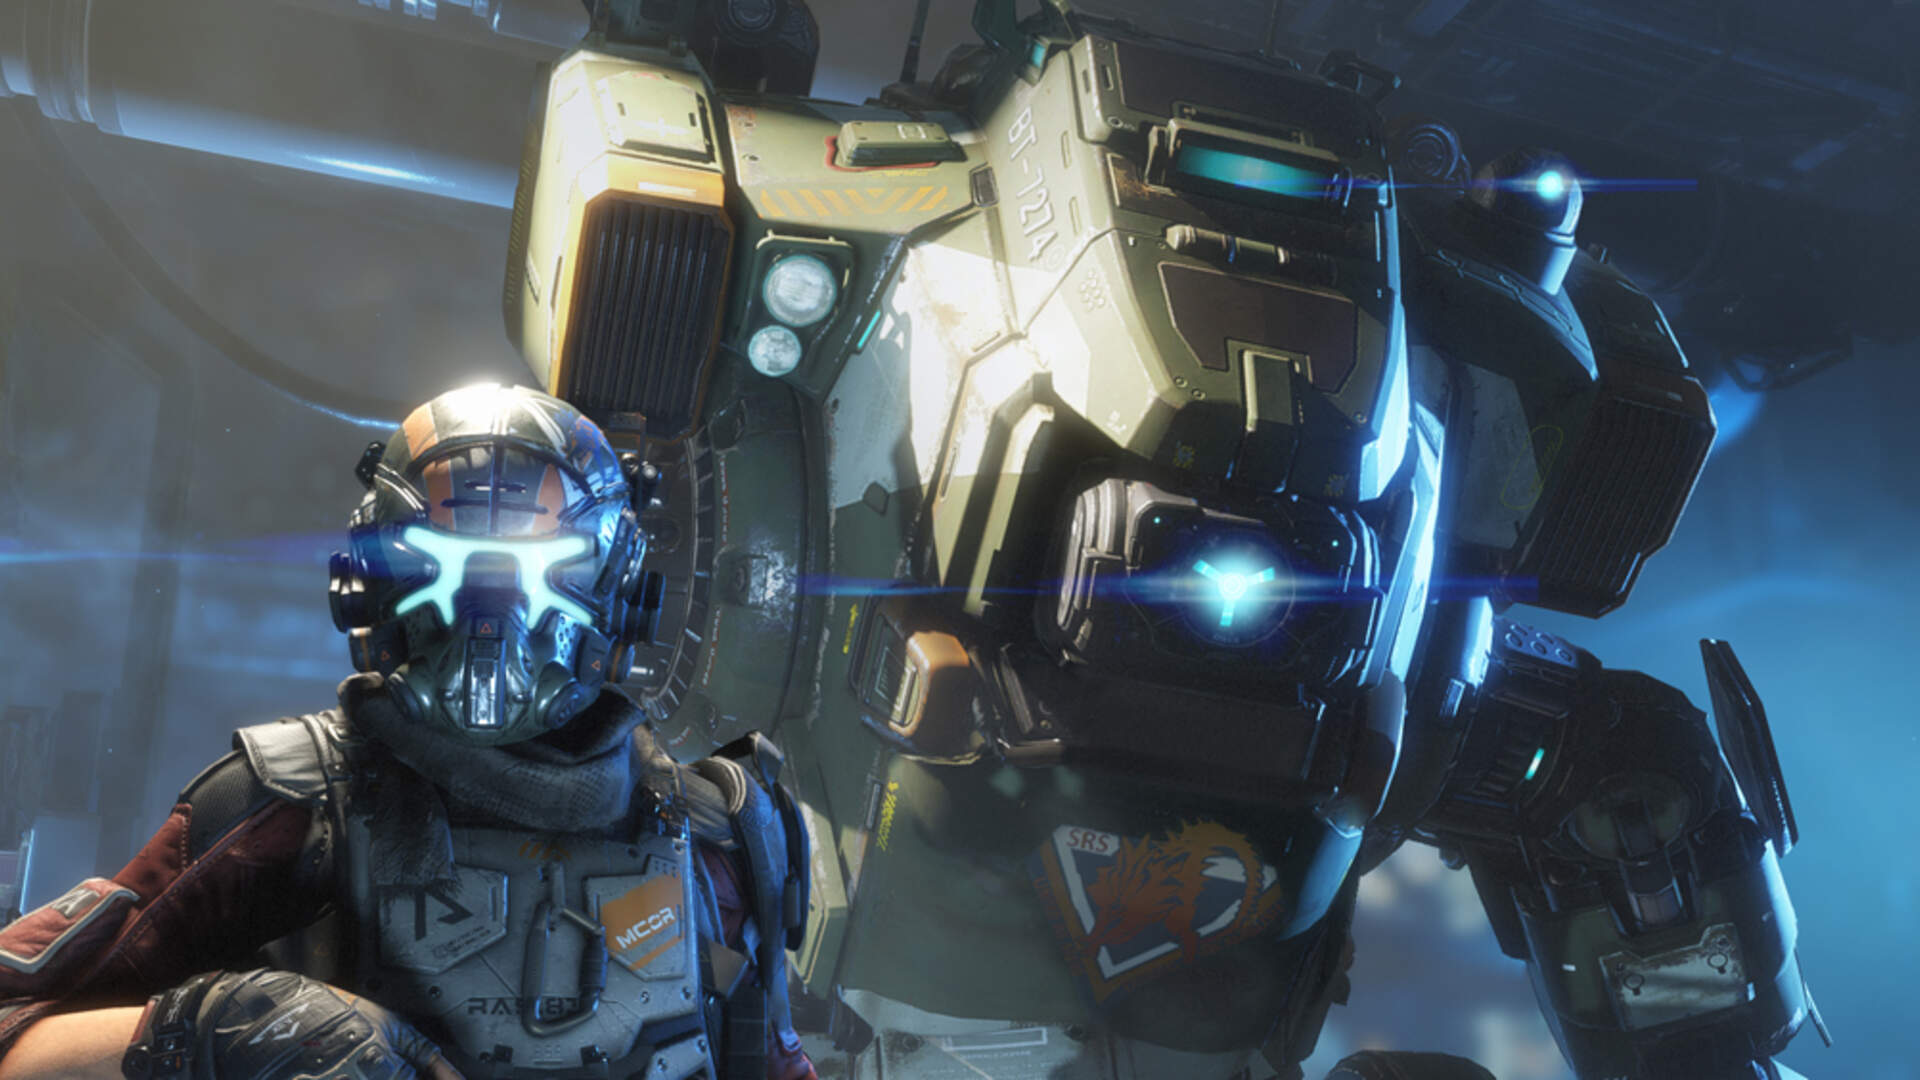 Respawn Teases New VR Project With Oculus, Confirms It Has Nothing to Do With Titanfall